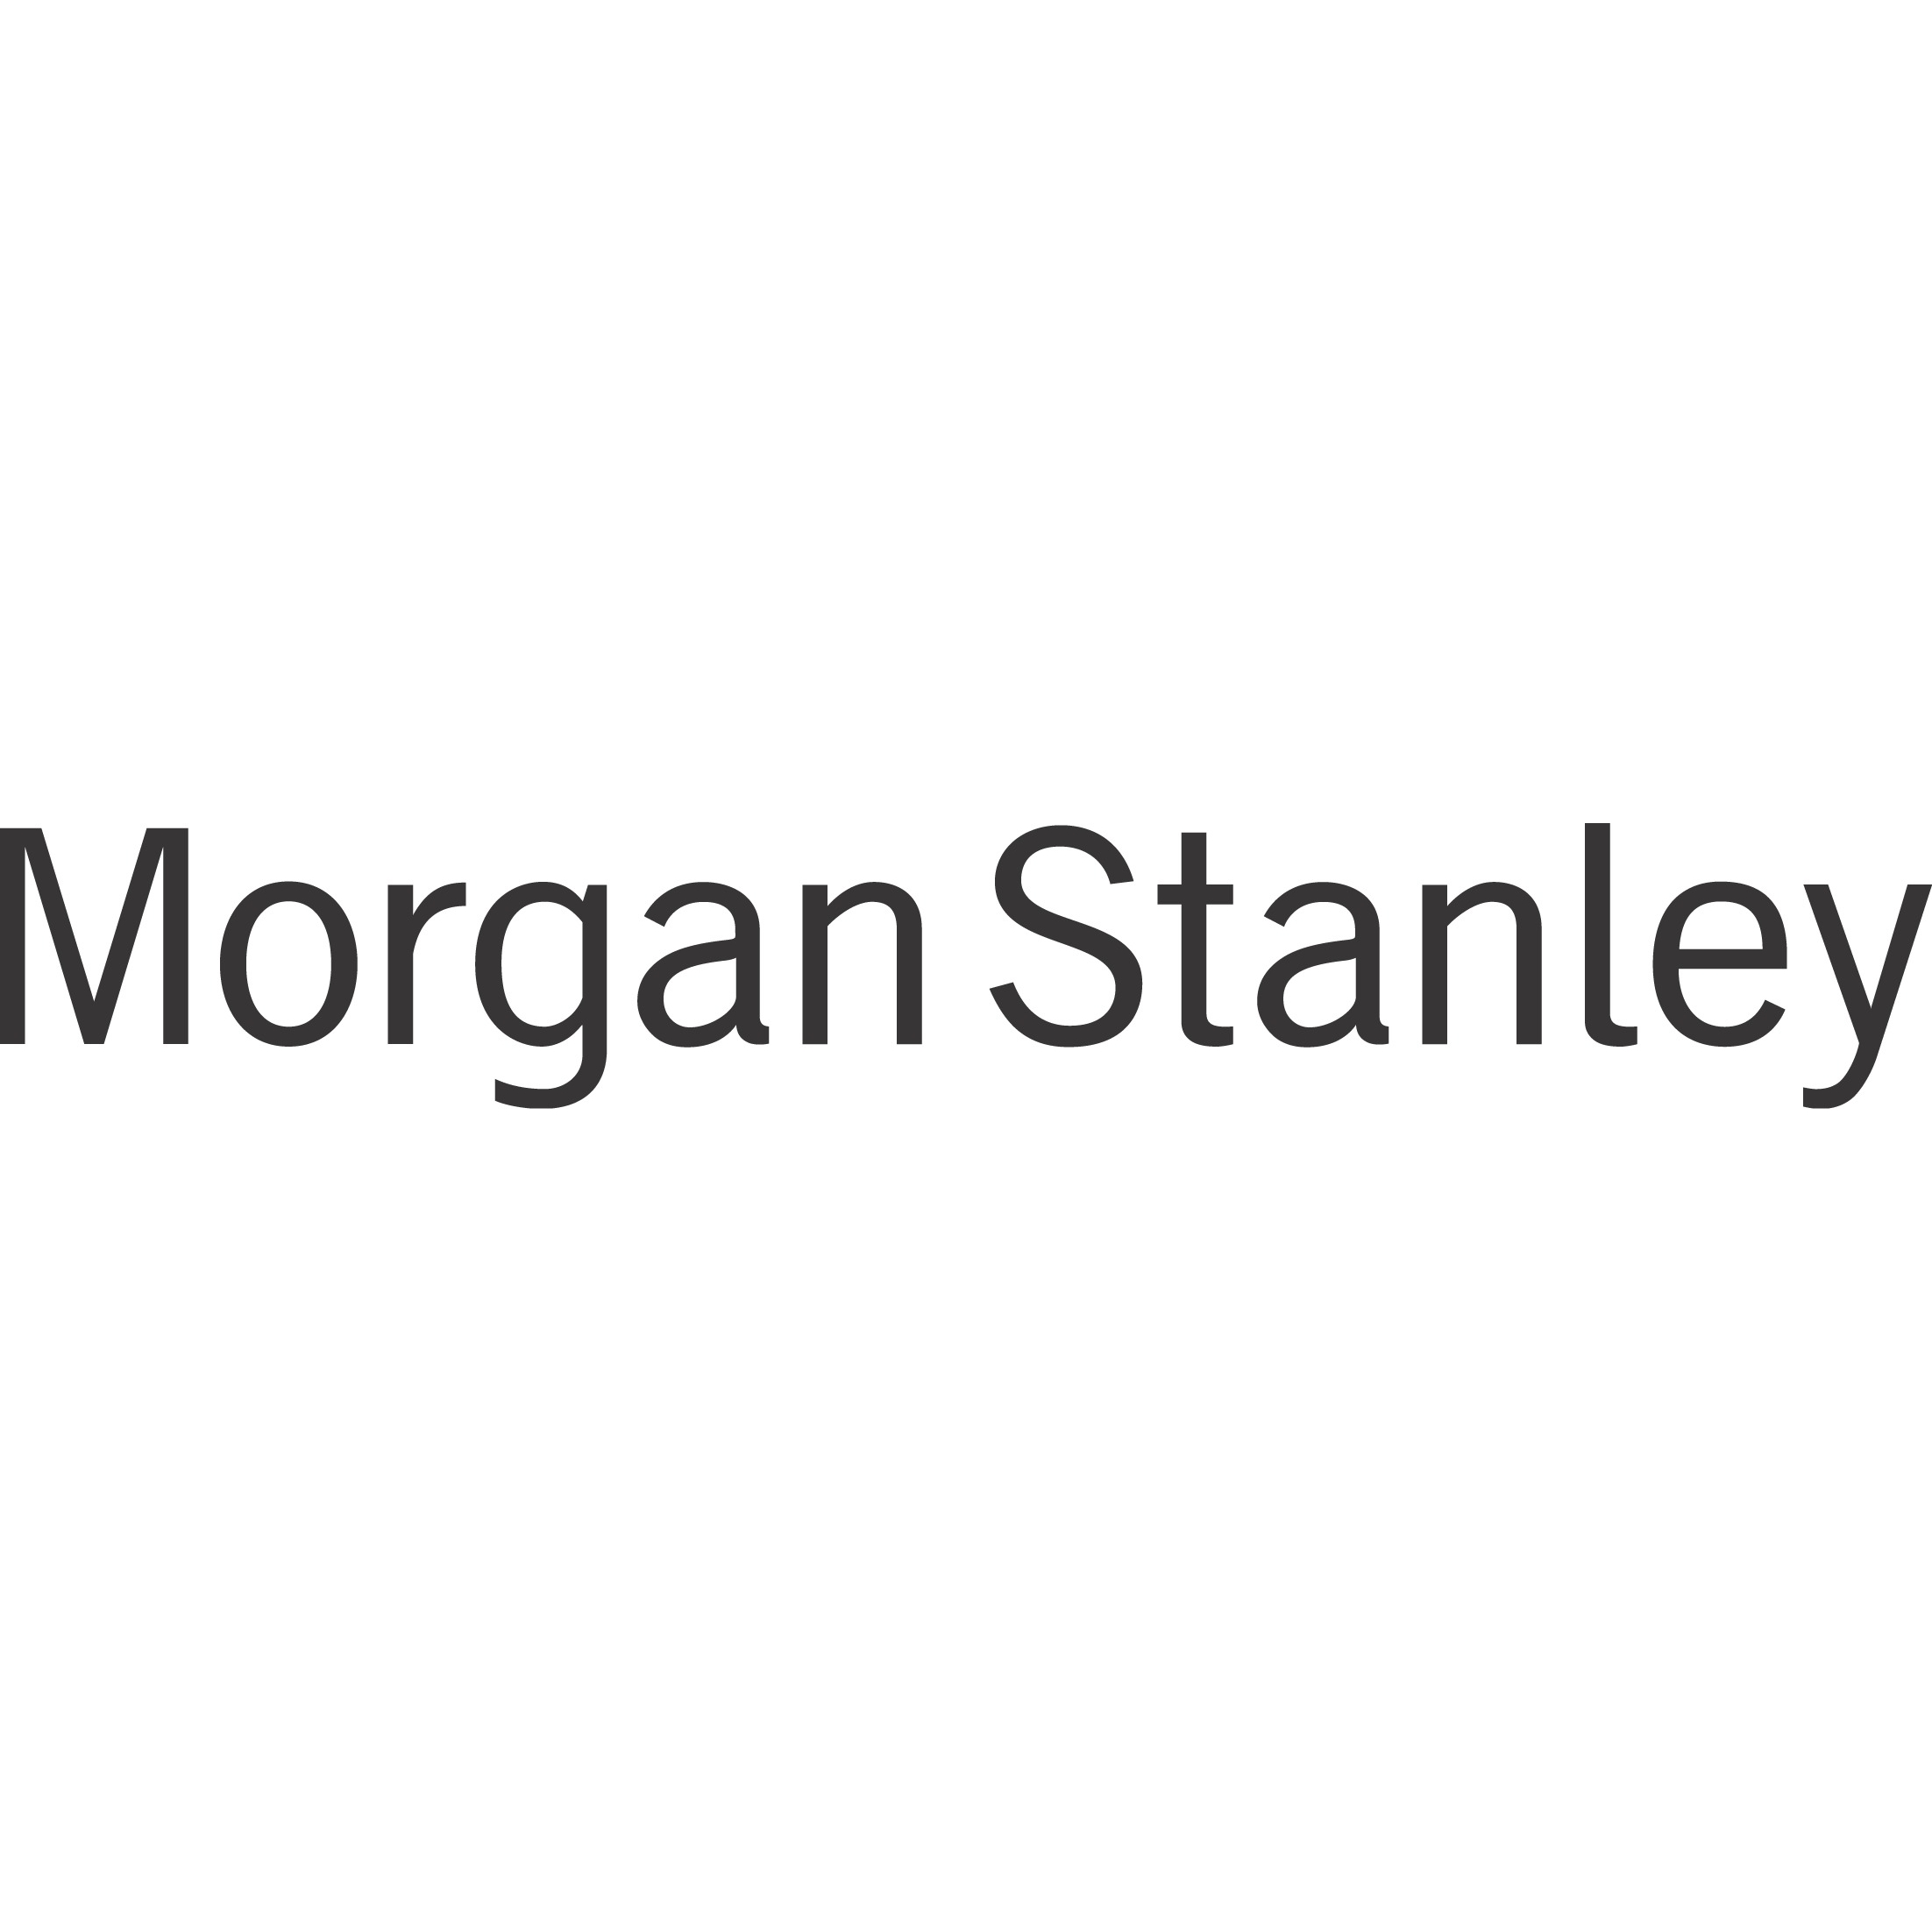 The Cumming and Loggins Group - Morgan Stanley